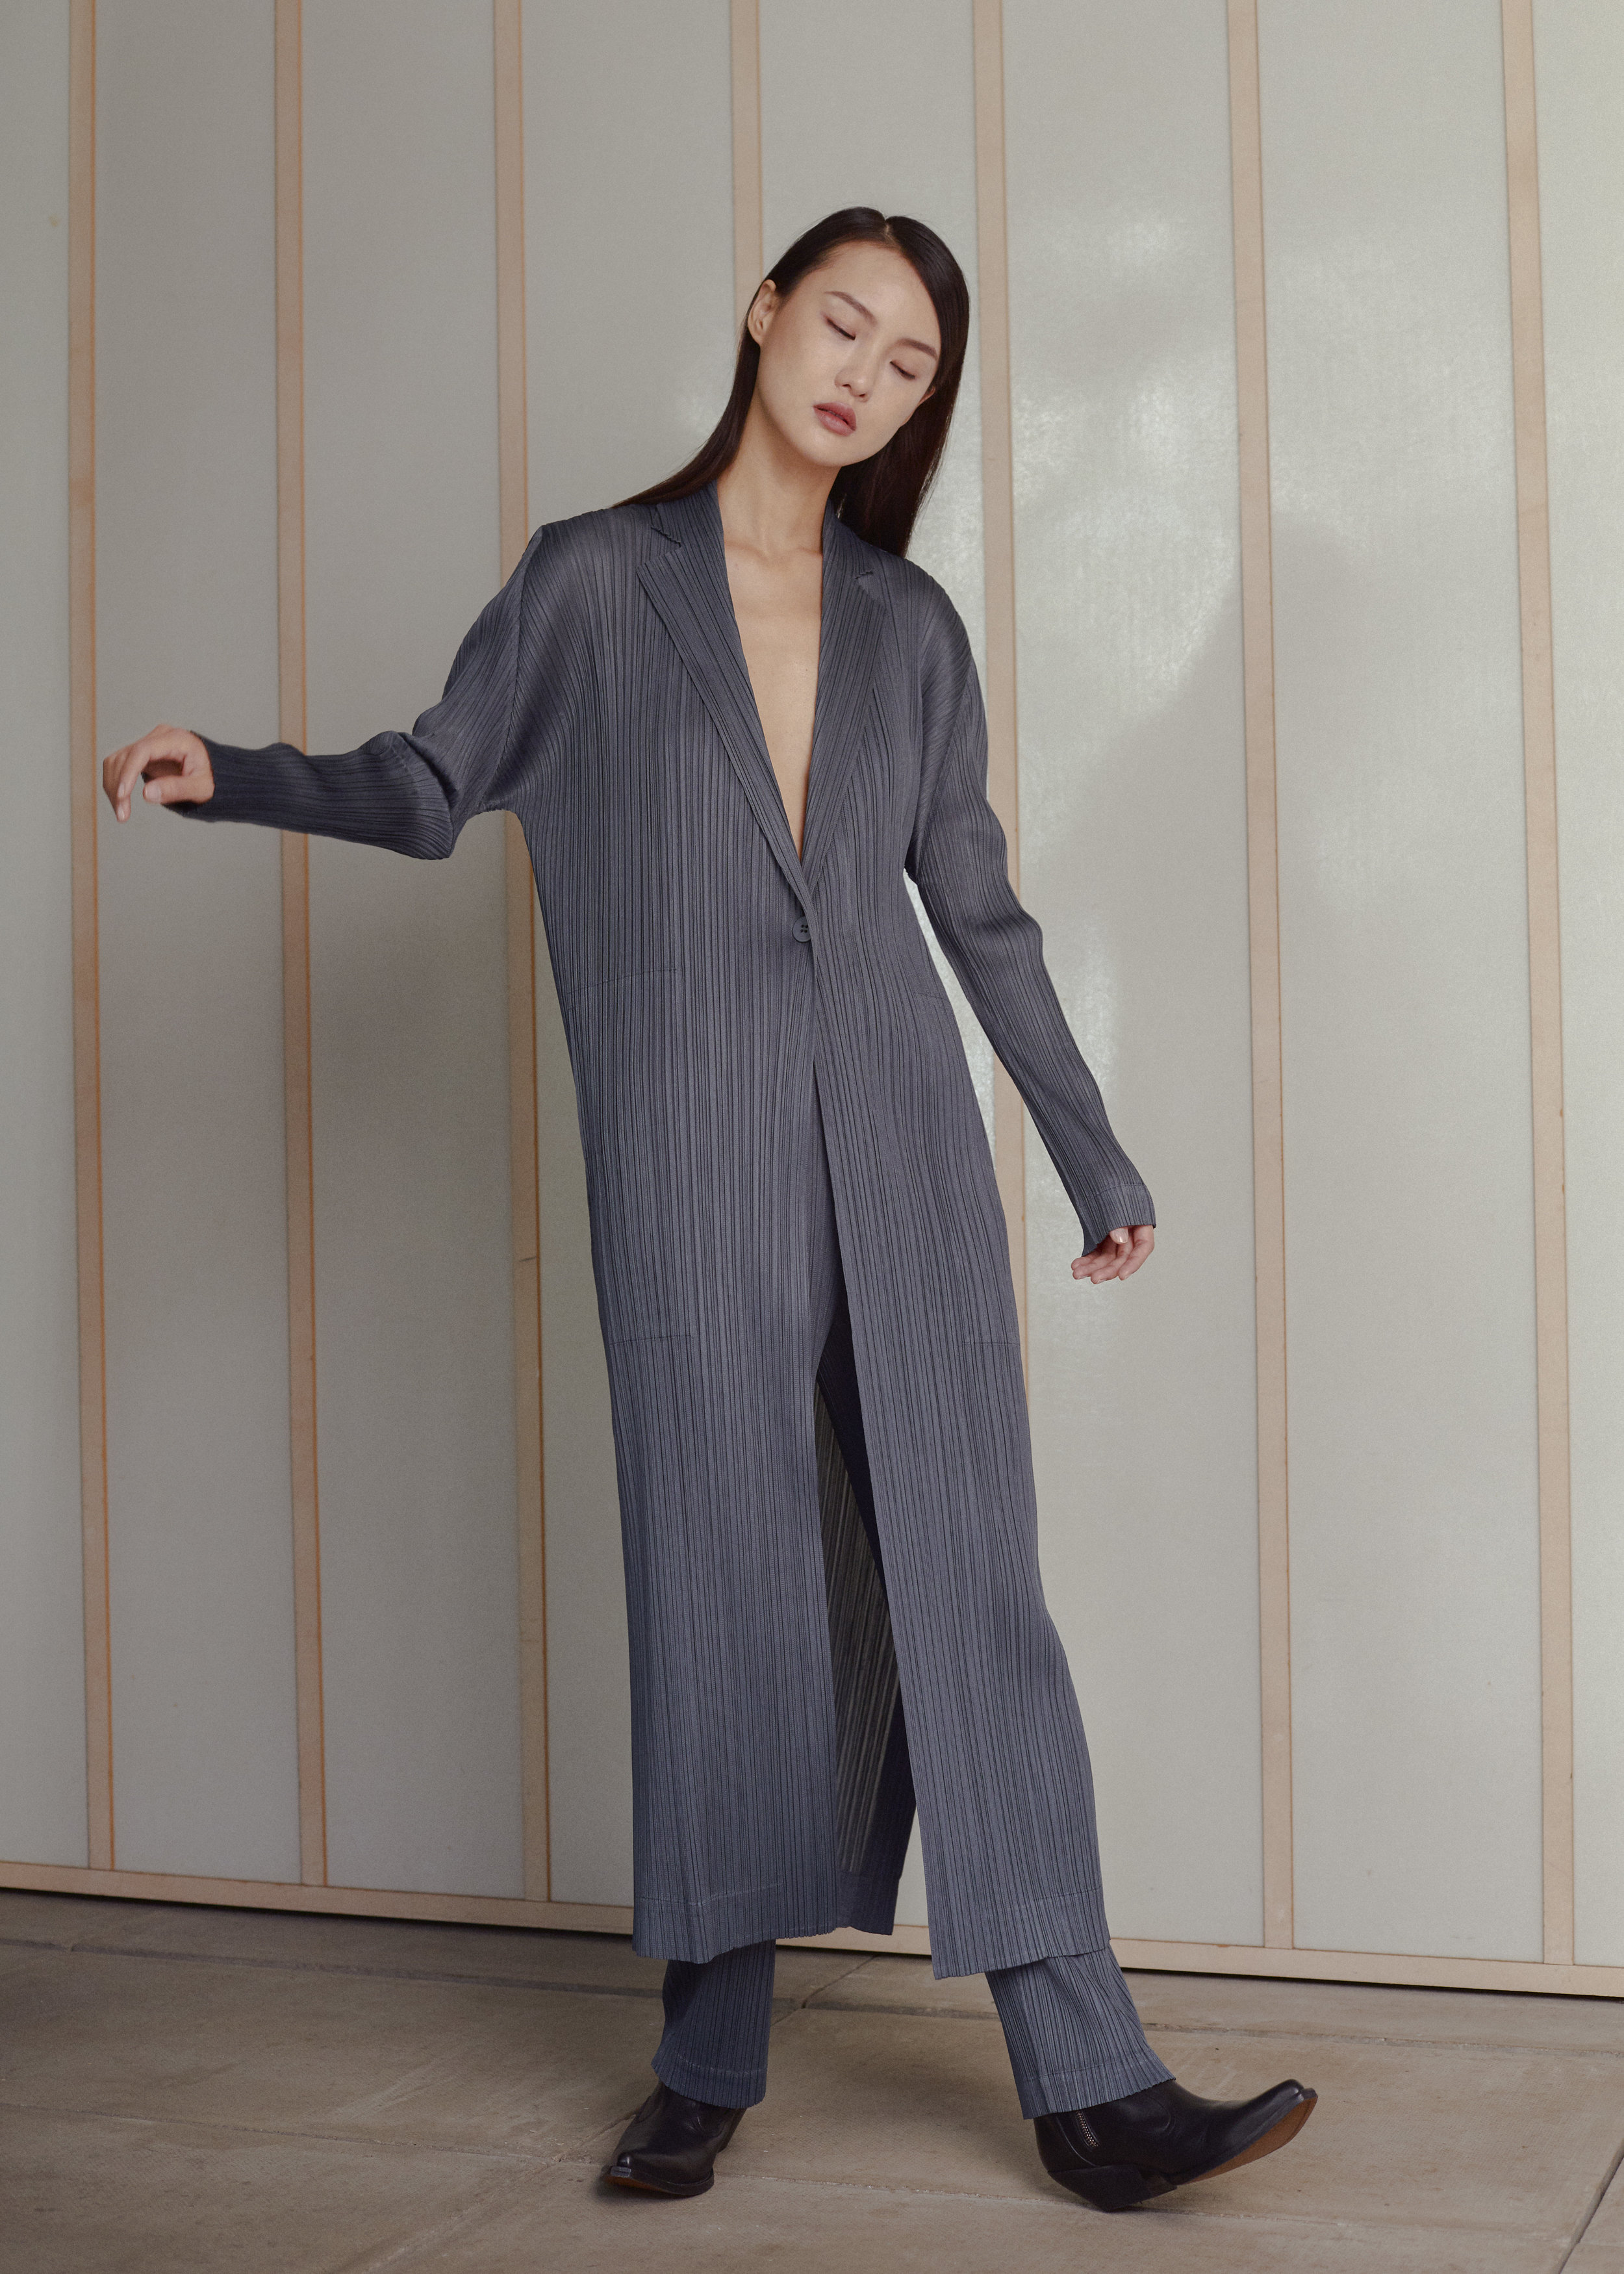 Full Look  PLEATS PLEASE ISSEY MIYAKE  with  EMPORIO ARMANI  shoes